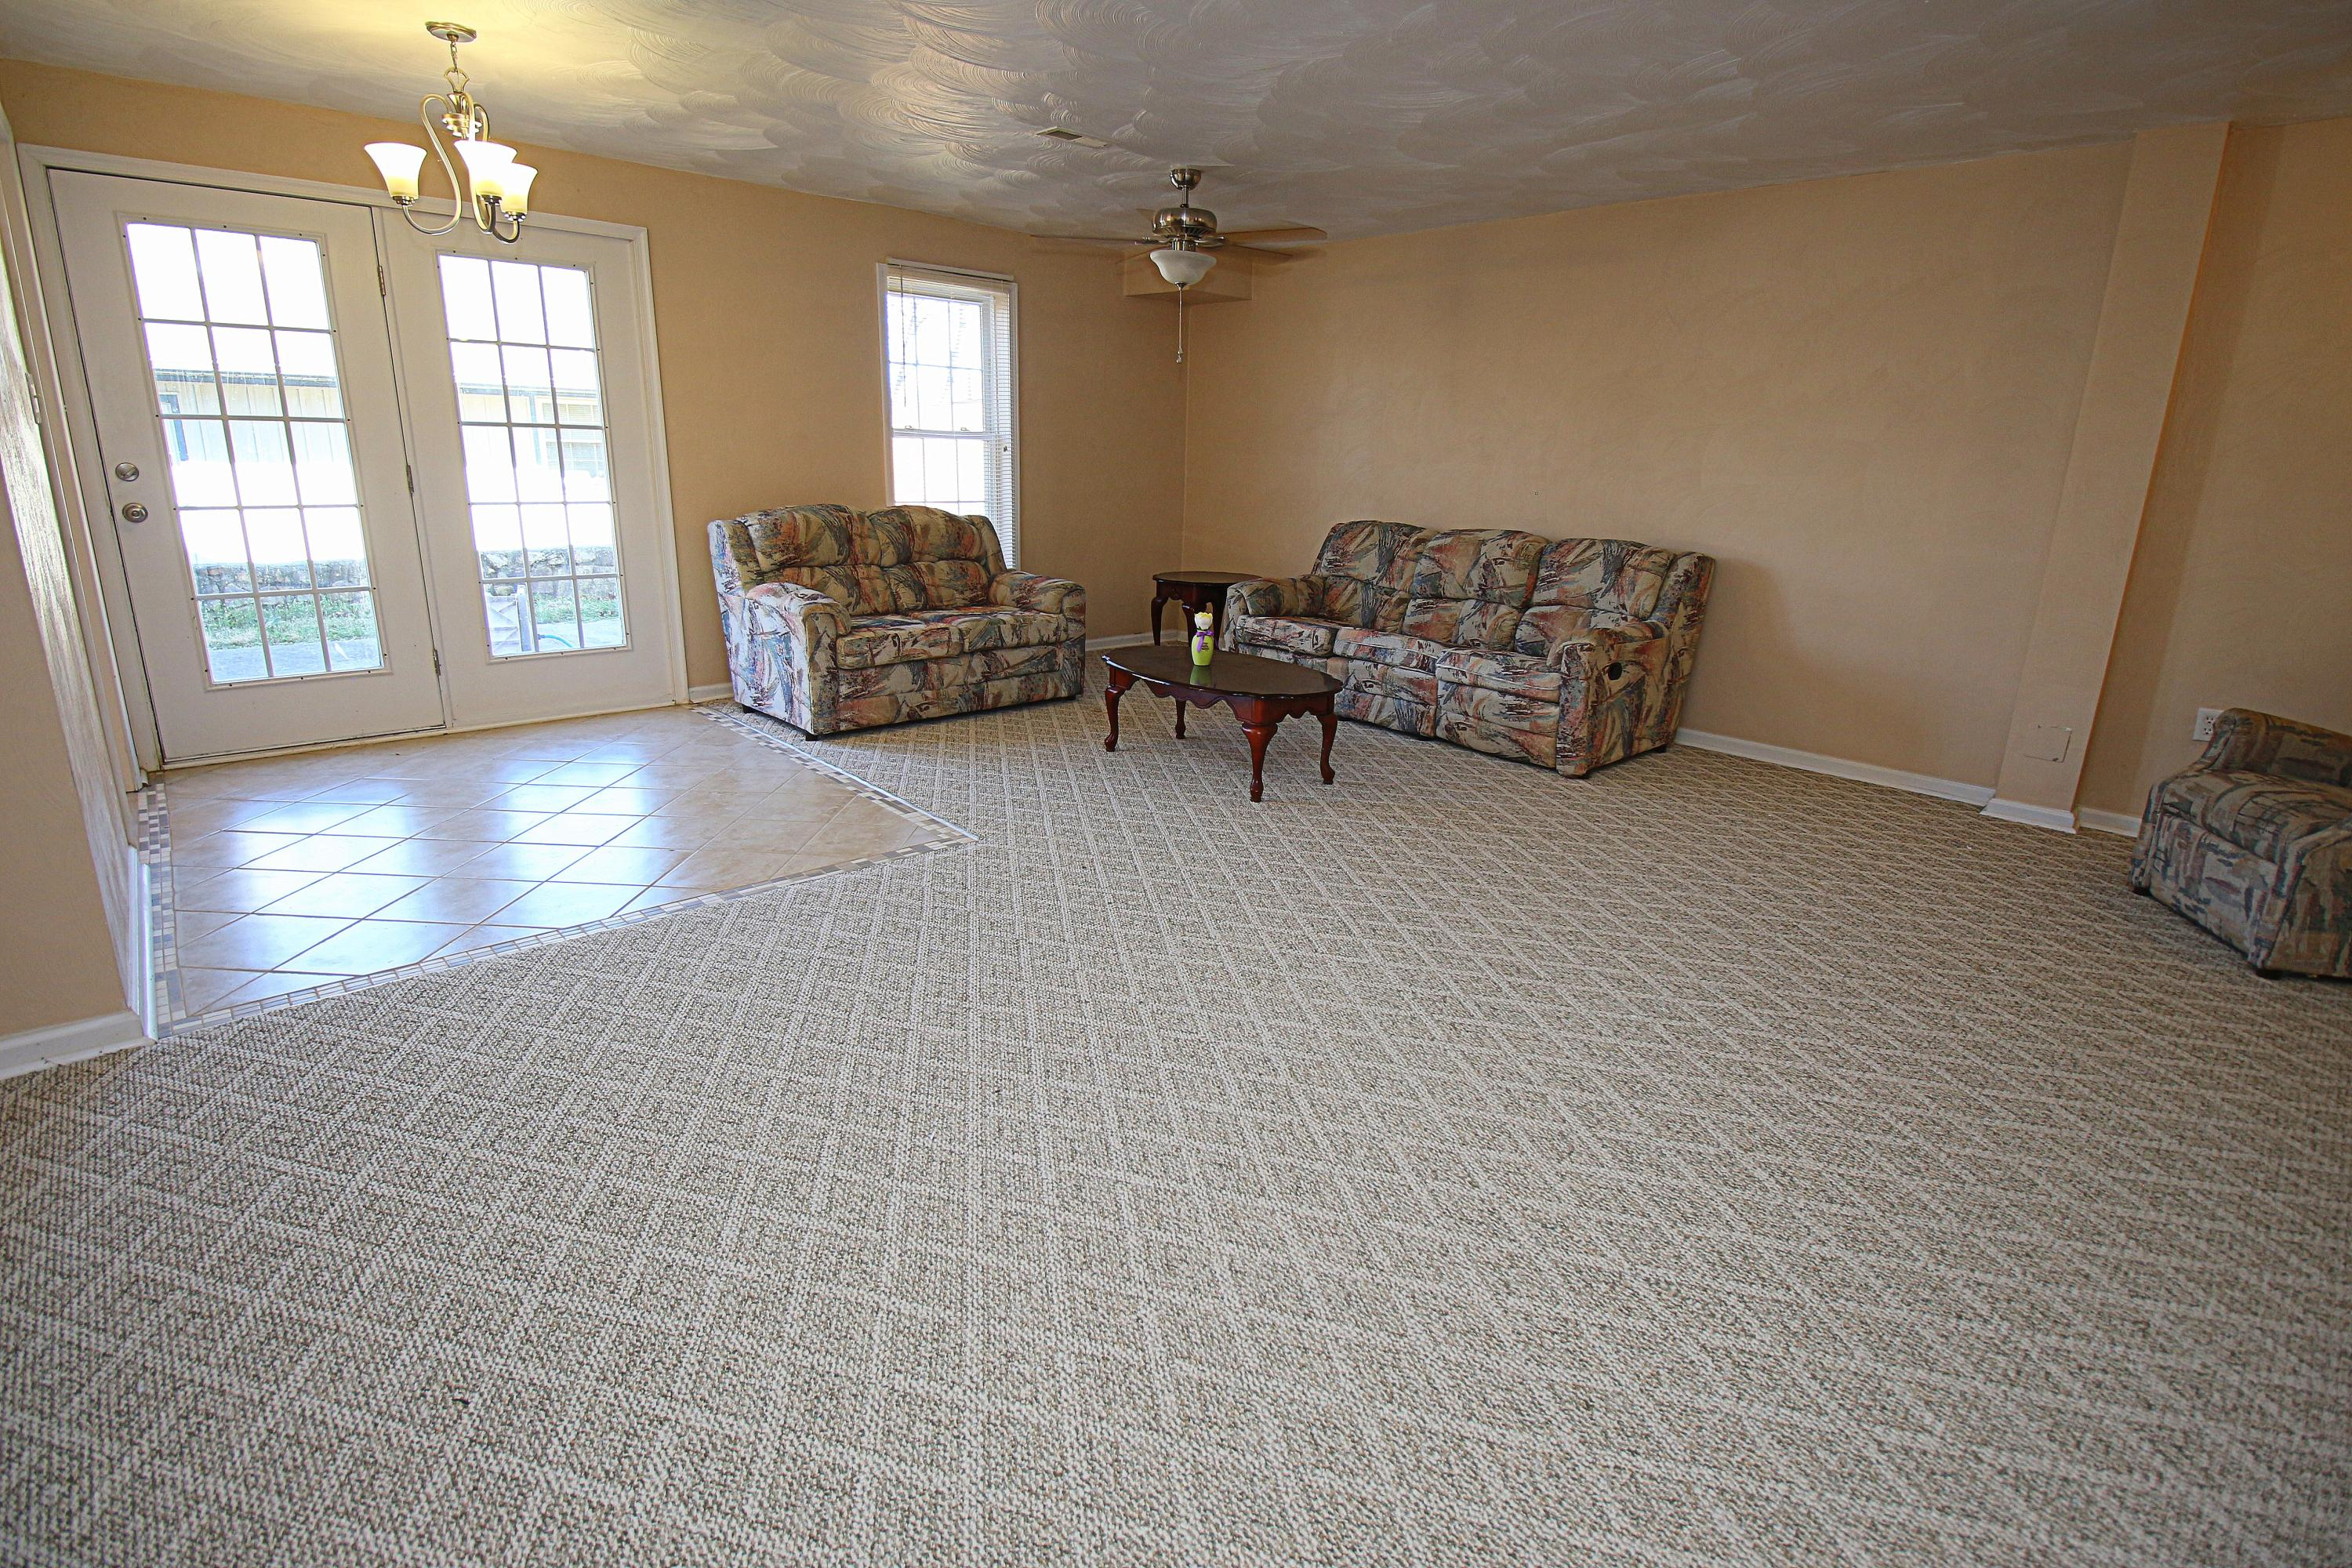 Additional photo for property listing at 2010 Stone Mill Dr Salem, Virginia 24153 United States